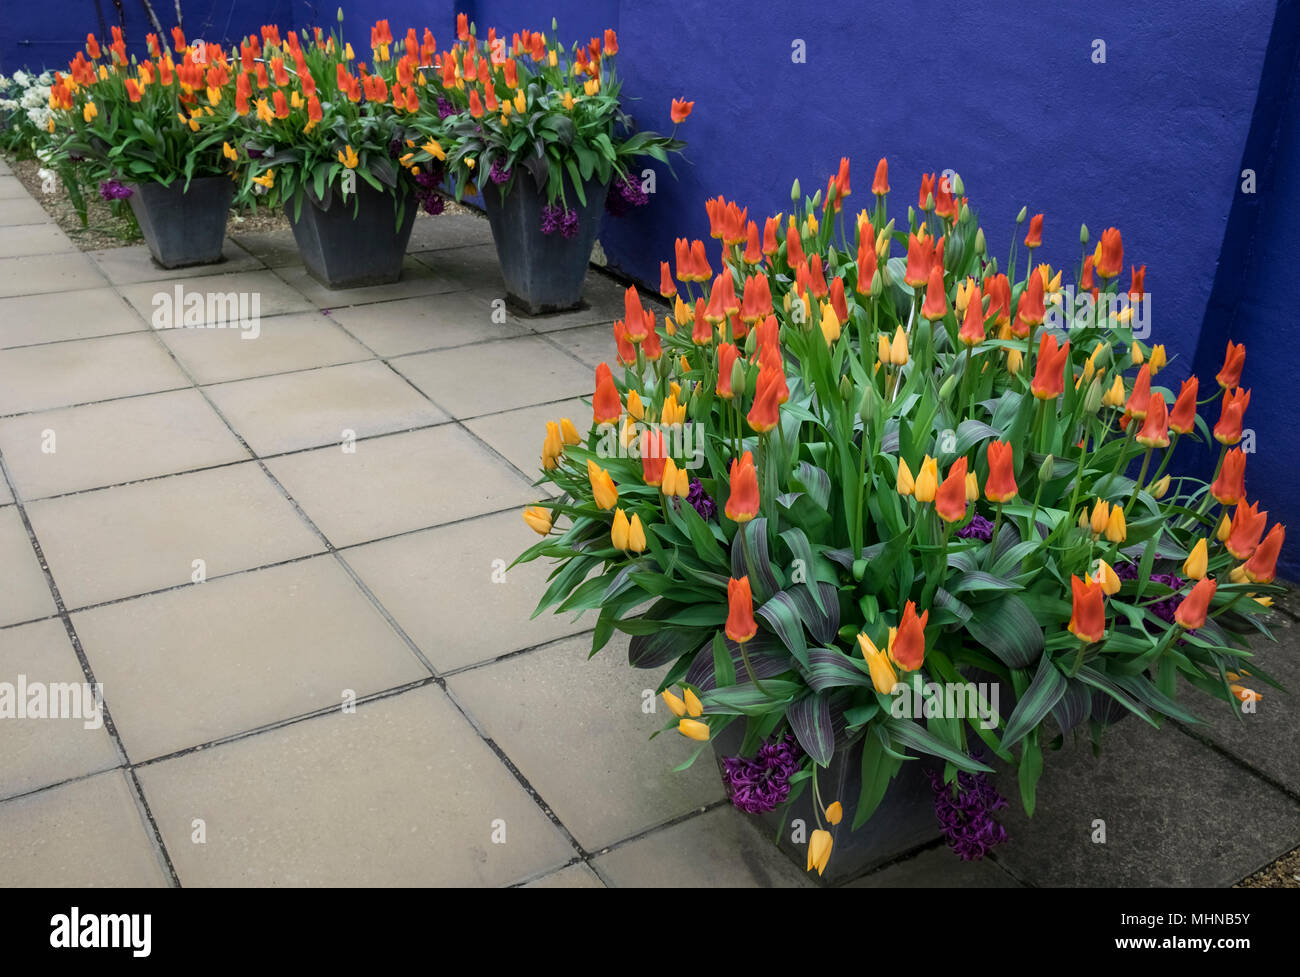 Vibrant coloured tulips and hyacinths growing in a garden pot against a warm blue background in a contemporary garden, England, UK Stock Photo